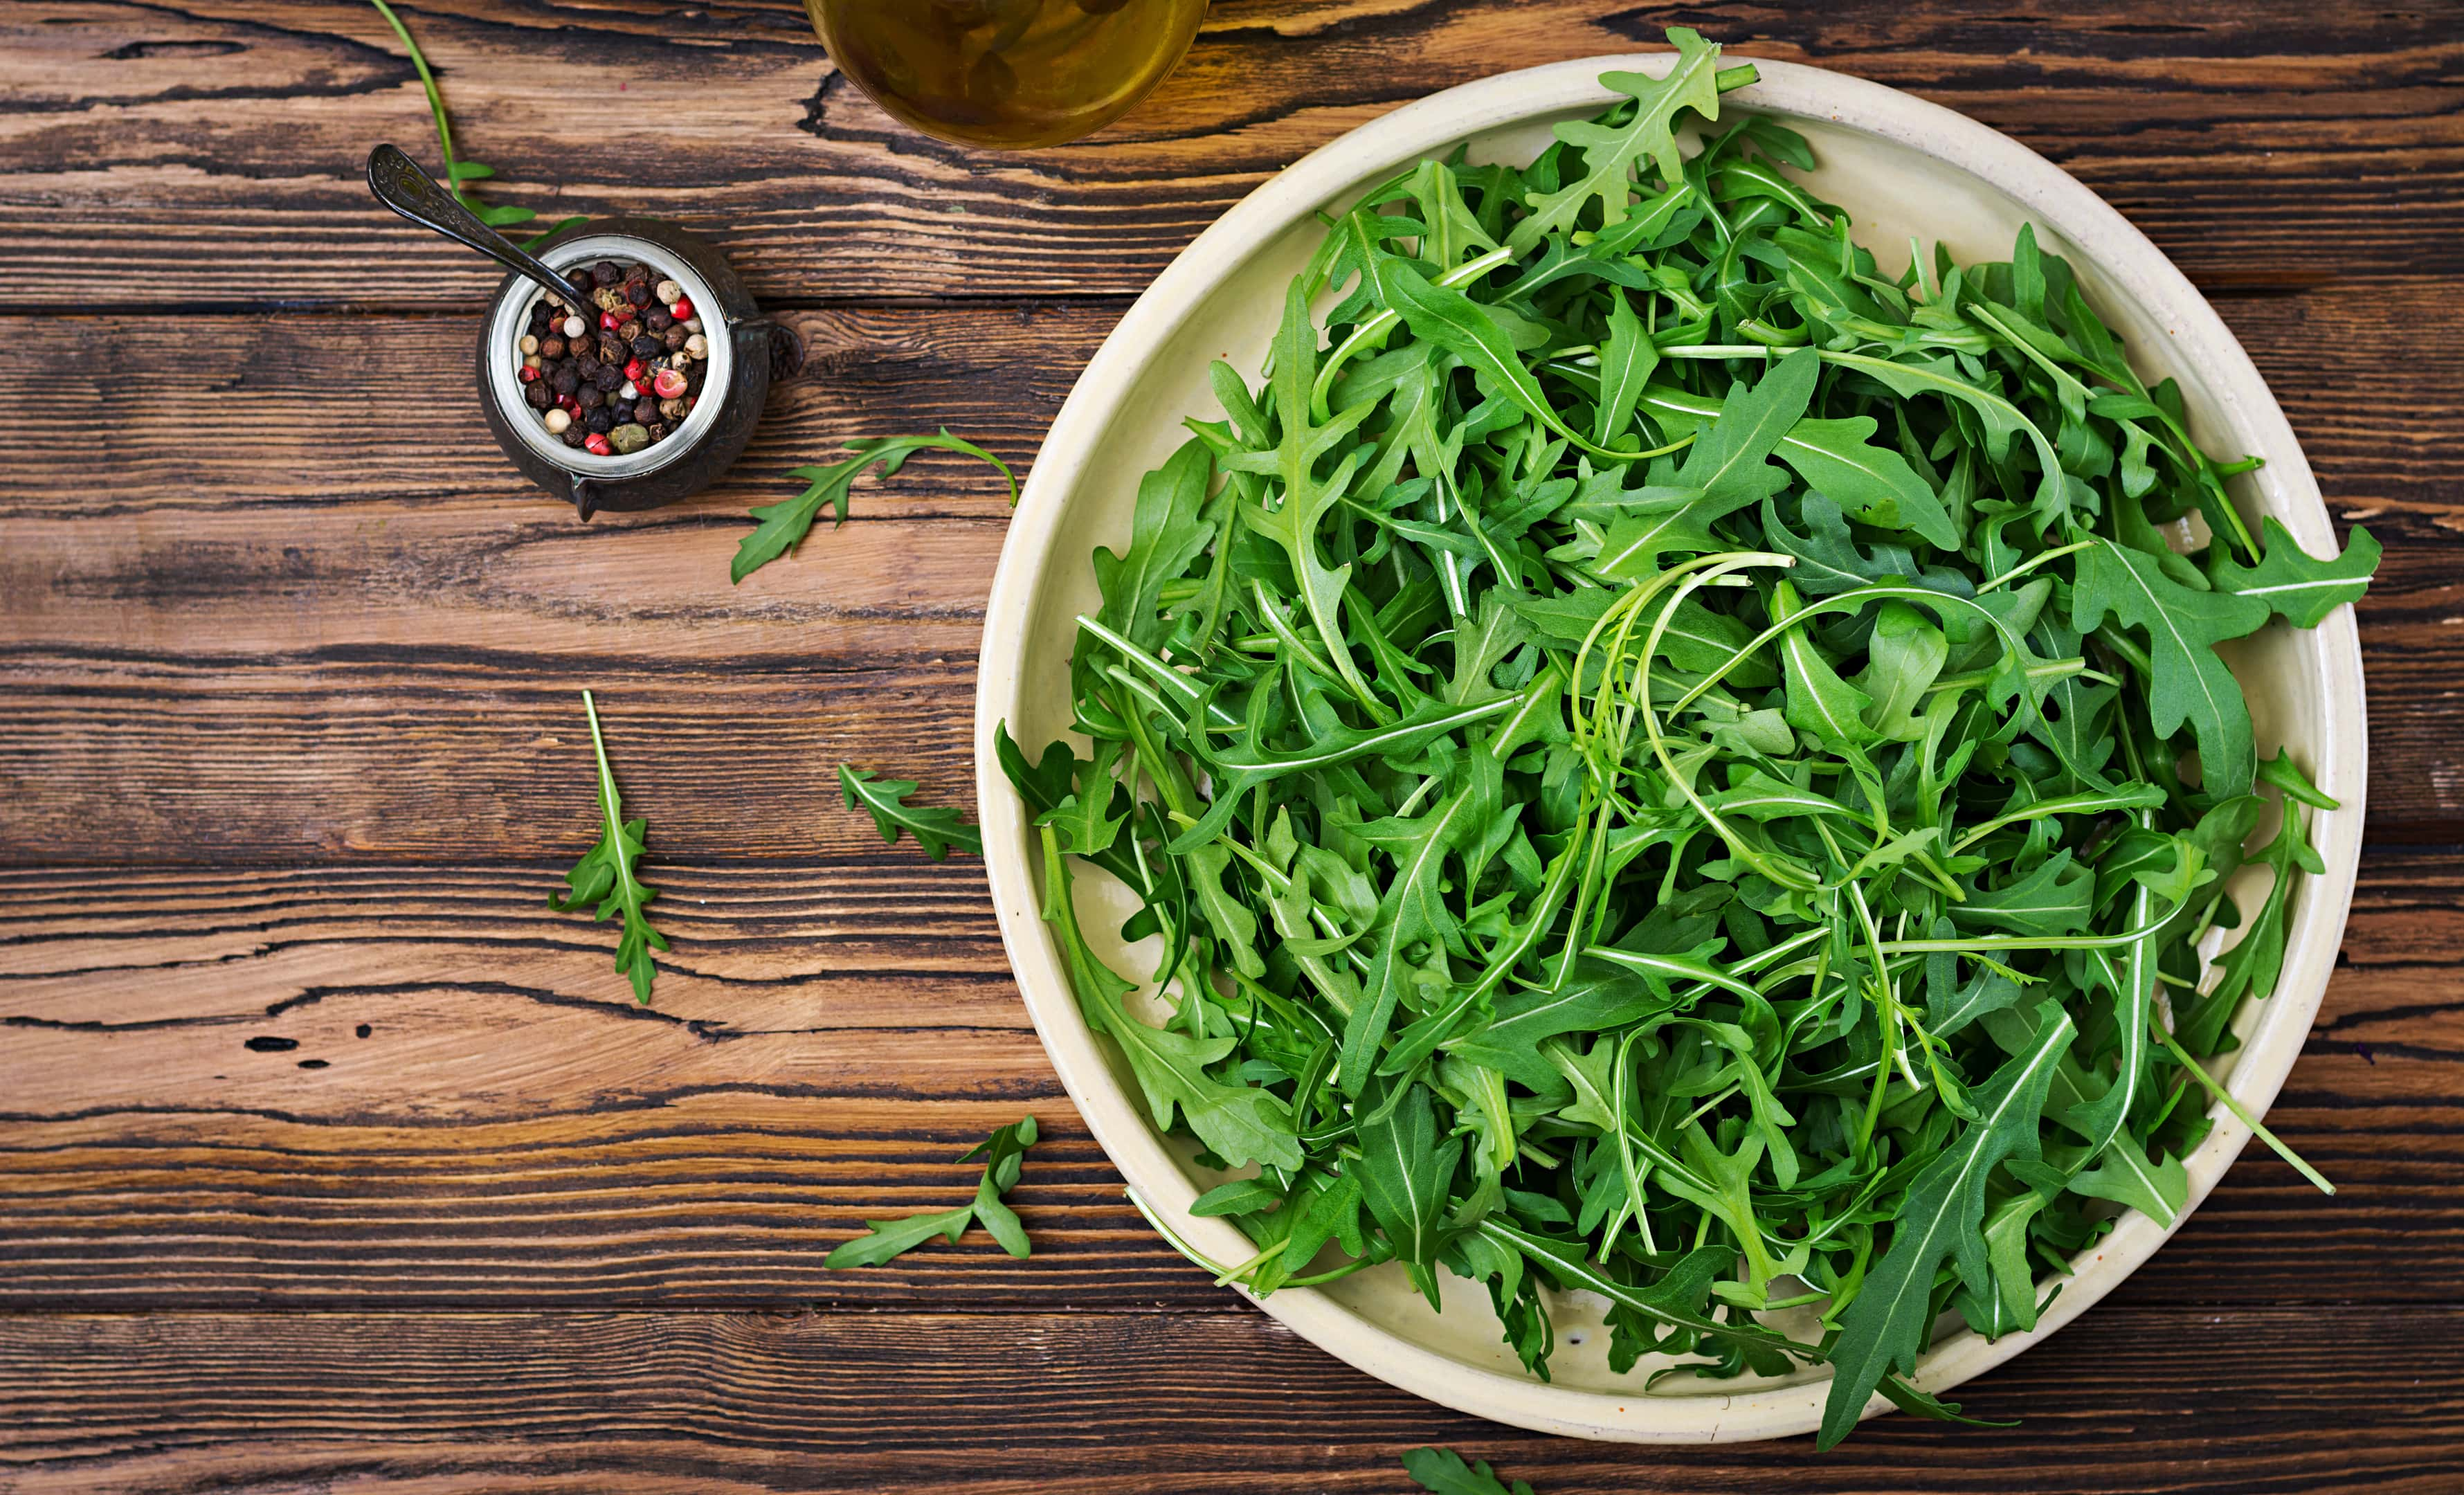 Fresh arugula leaves in a white bowl on a wooden table